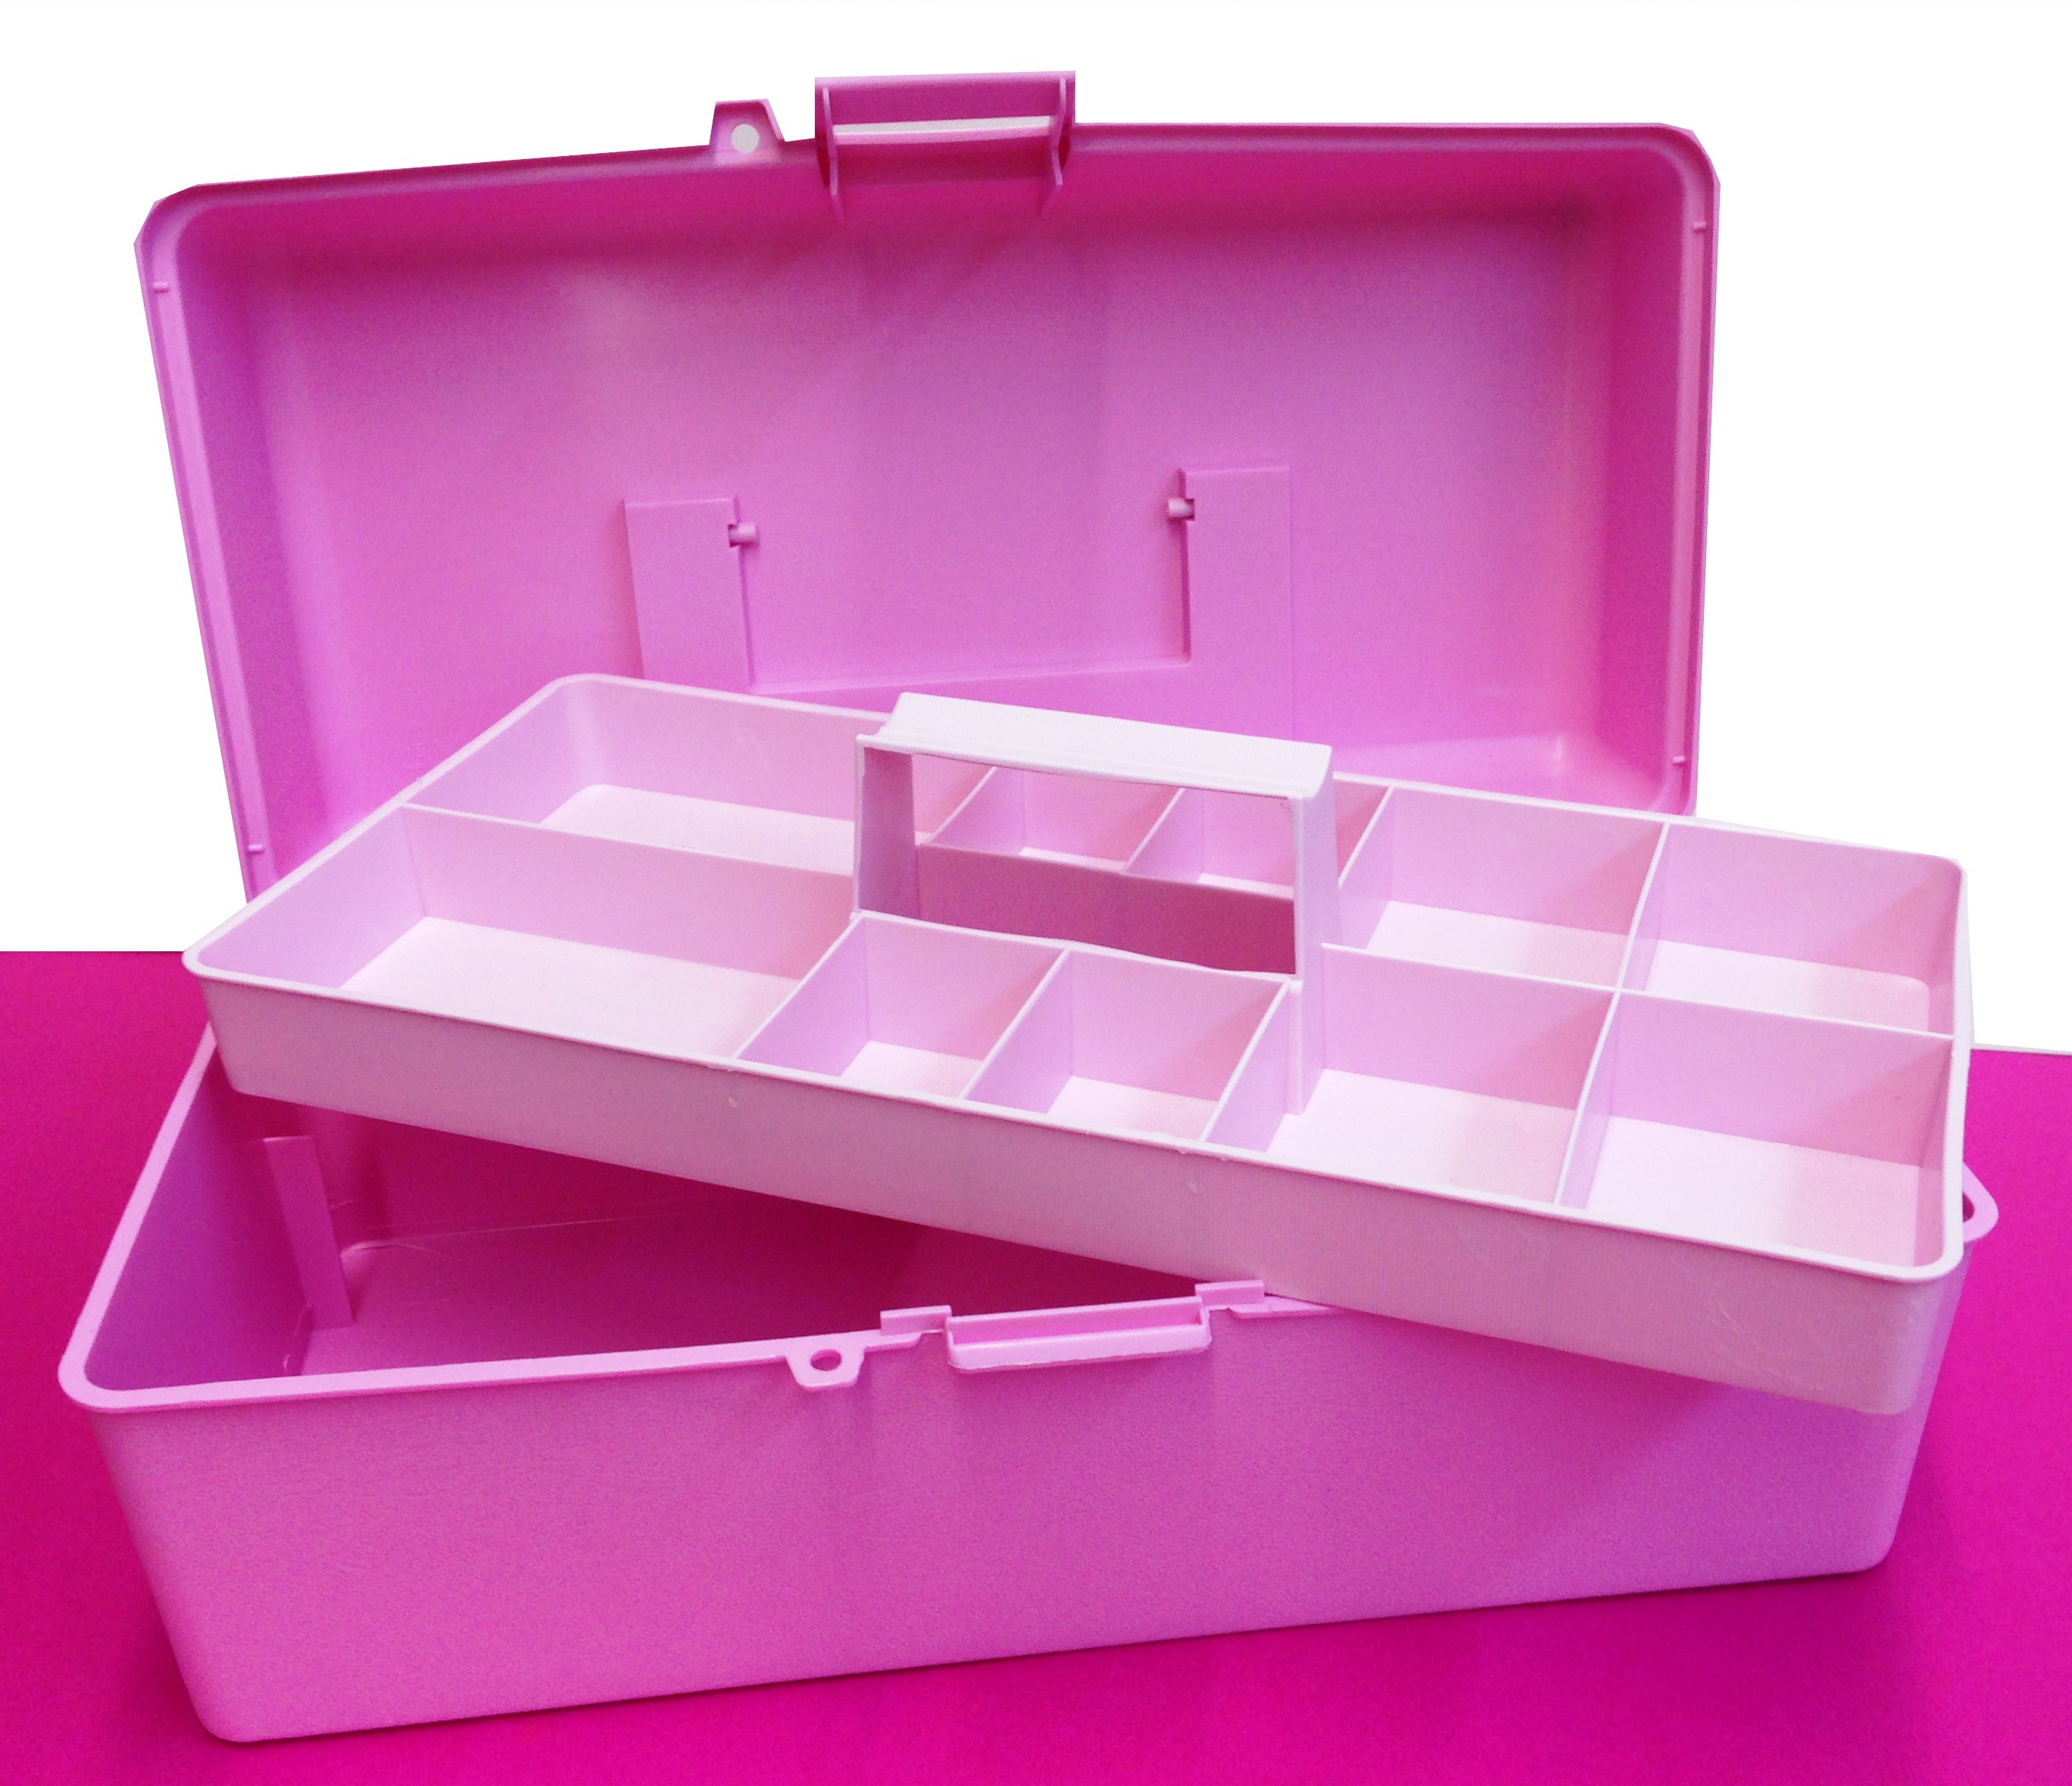 Empty Storage Box With Handy Pull Out Tray For Nail Art Make Up Manicure Supplieore